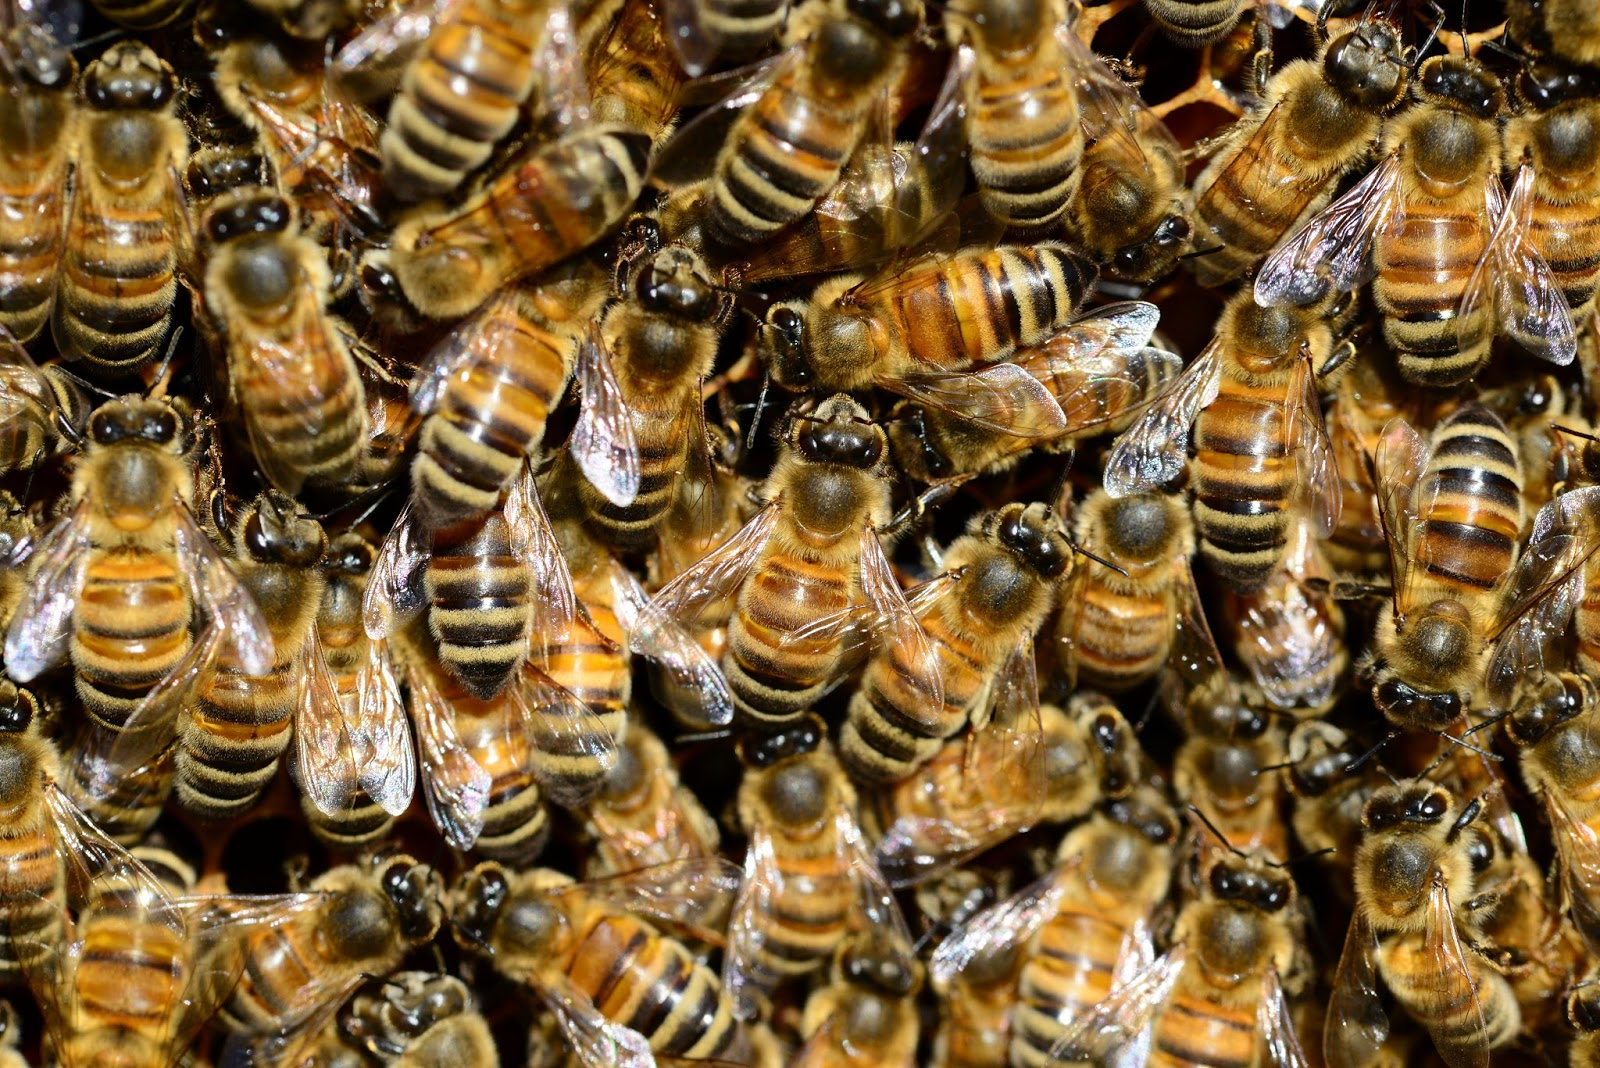 Picture of a swarm of bees.